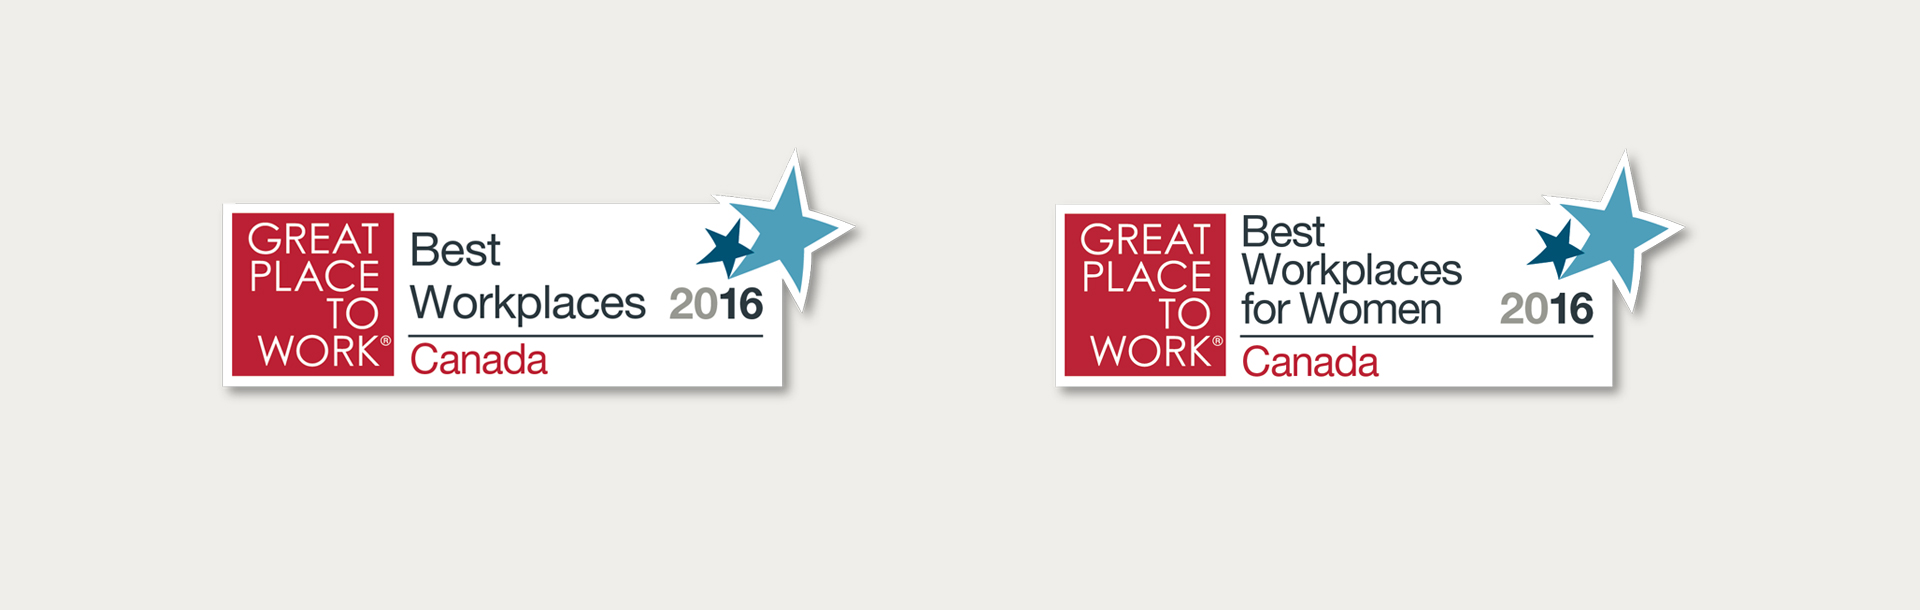 Best work places to work 2016